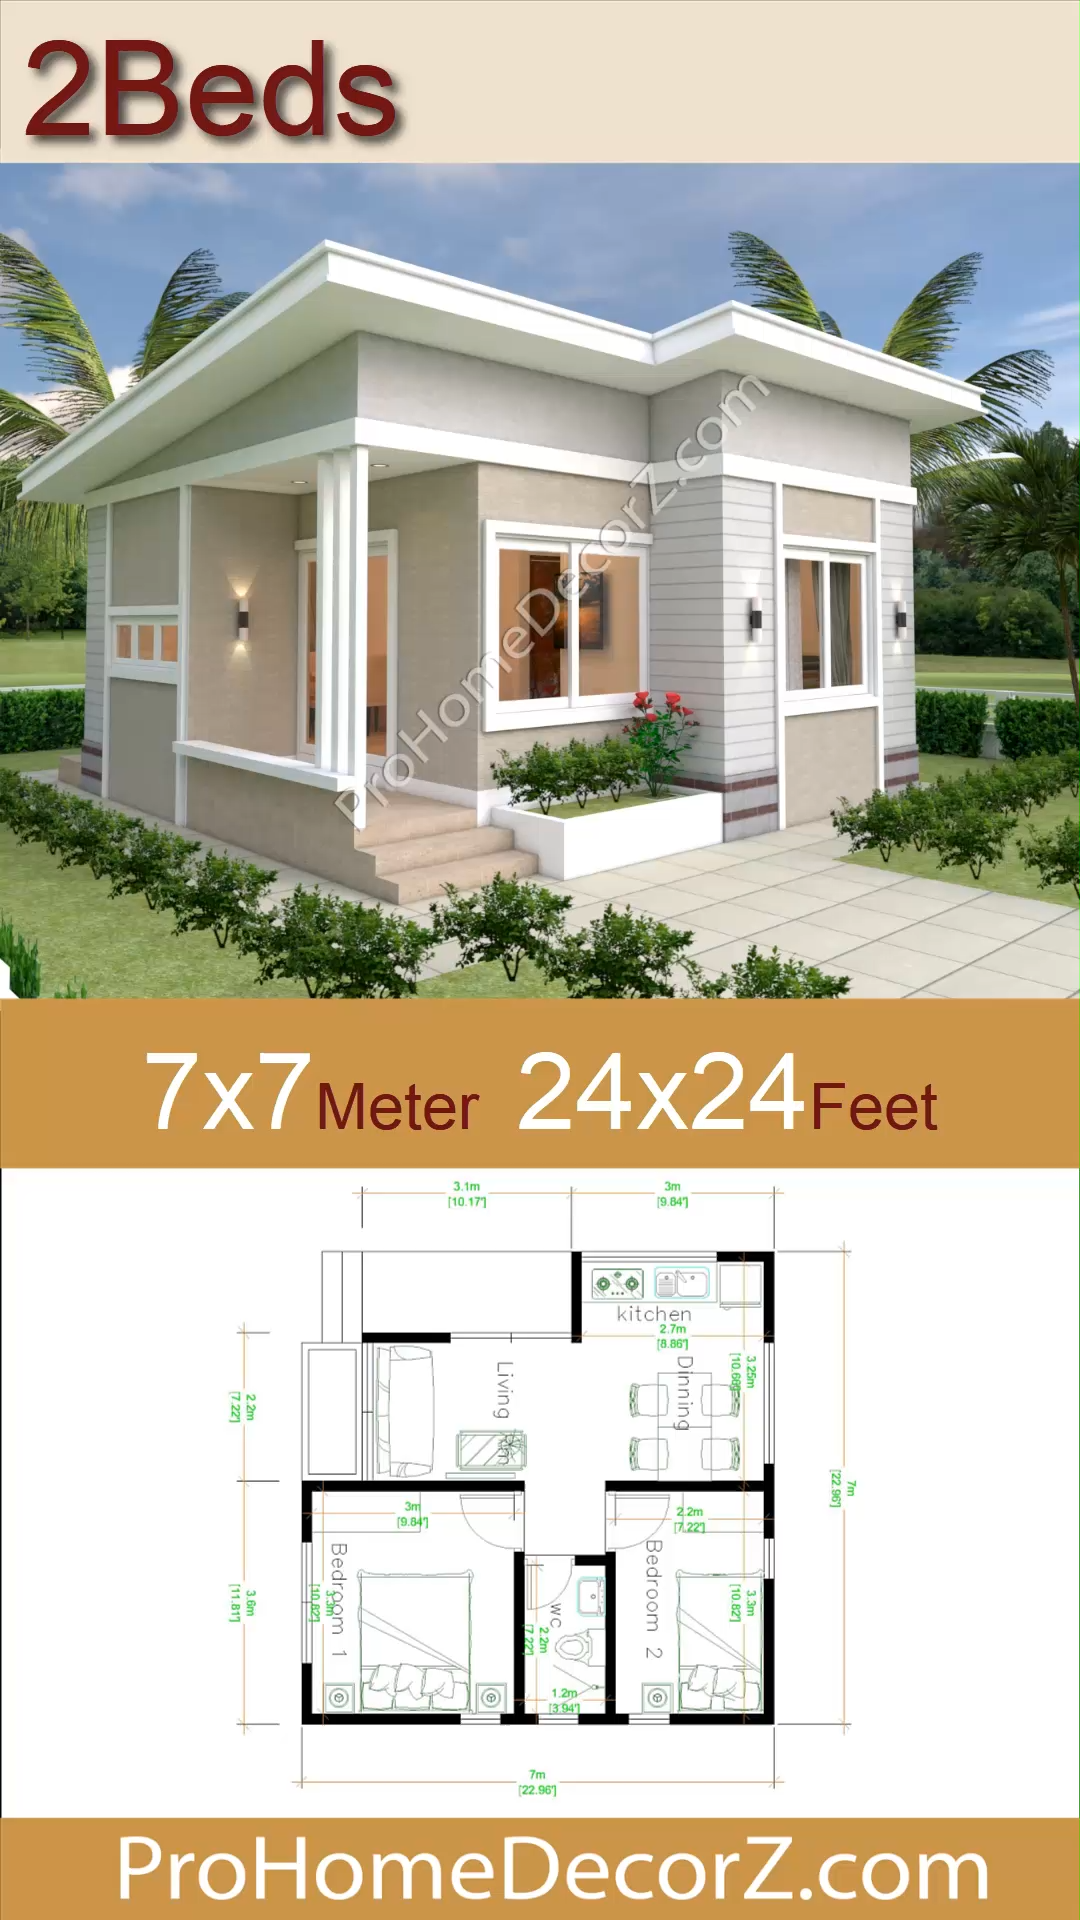 49+ 24x24 2 bedroom house plans information